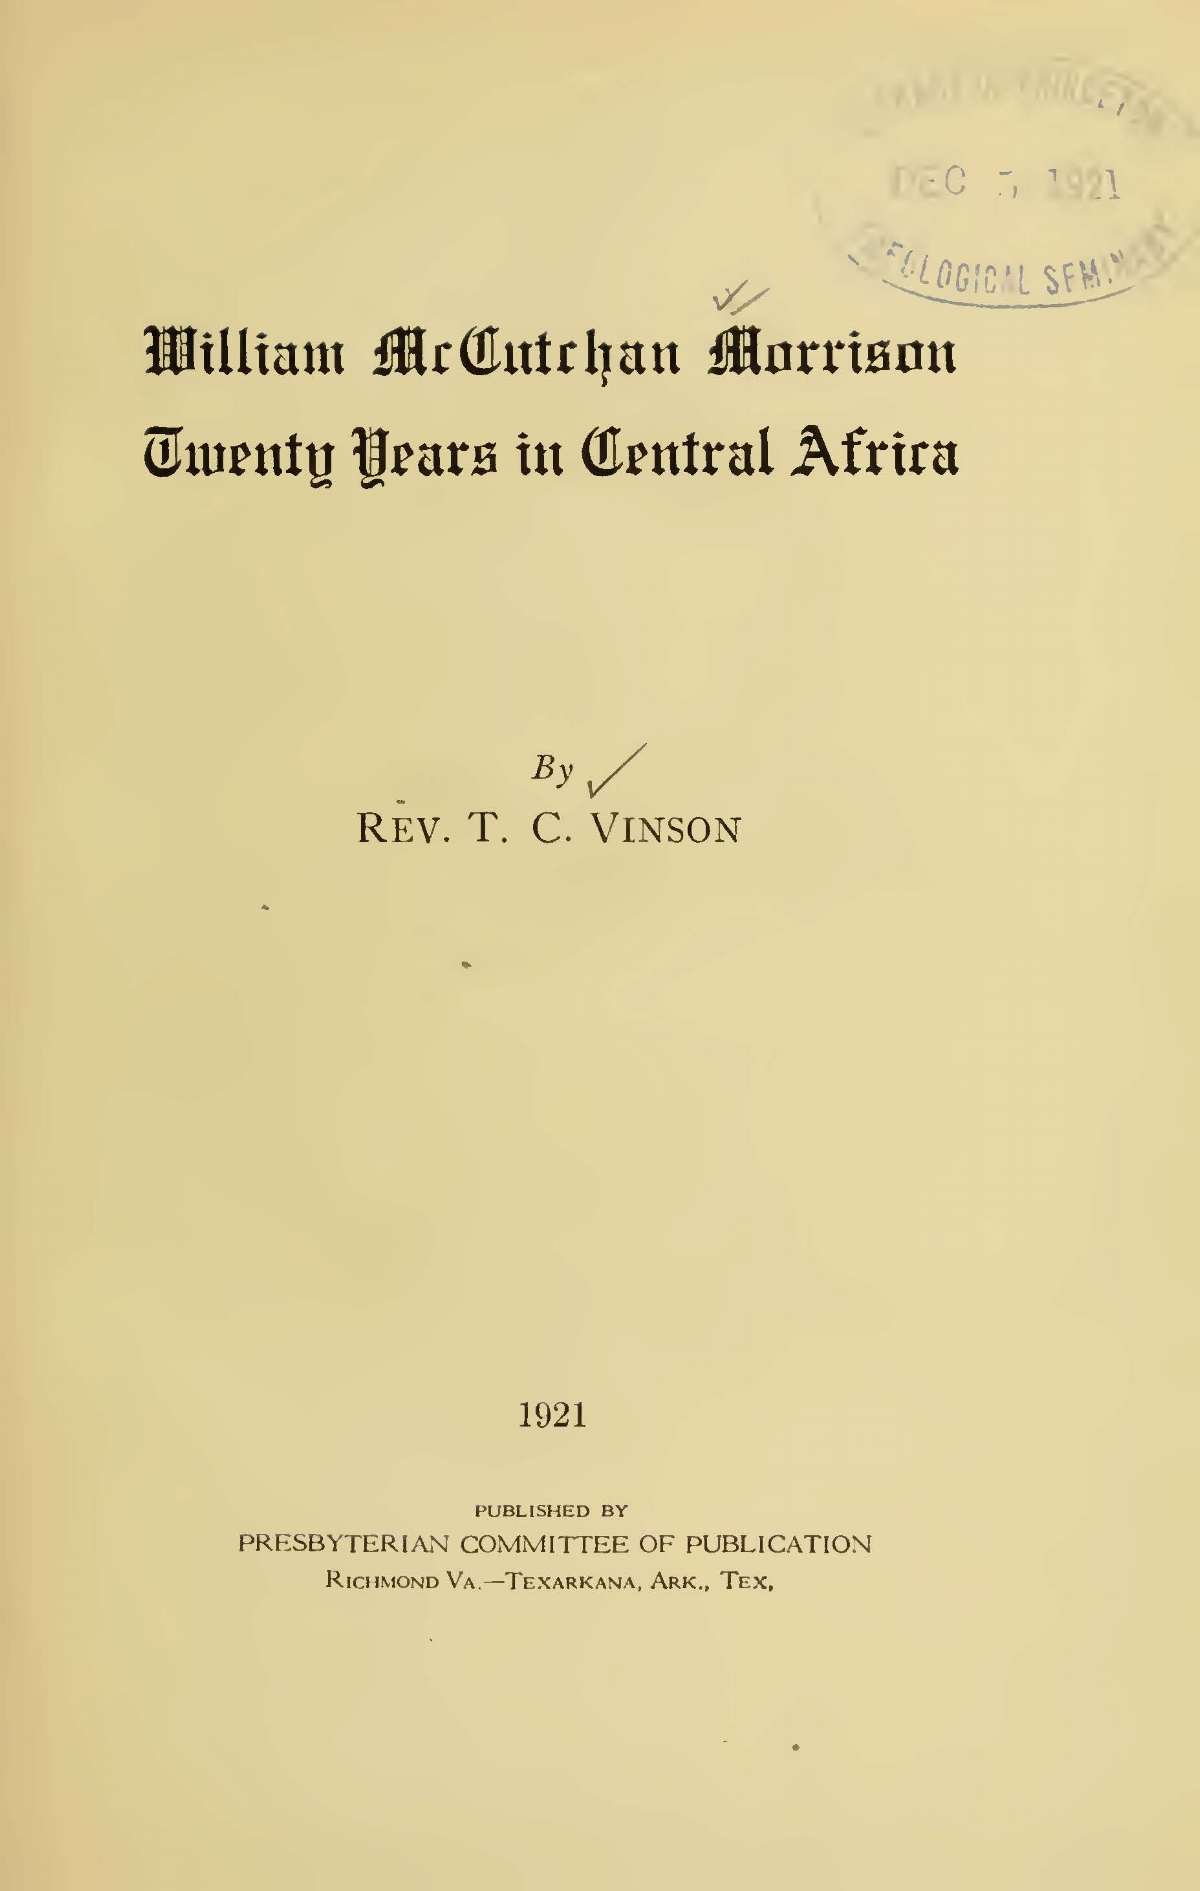 Vinson, Thomas Chalmers, William McCutchan Morrison Twenty Years in Central Africa Title Page.jpg